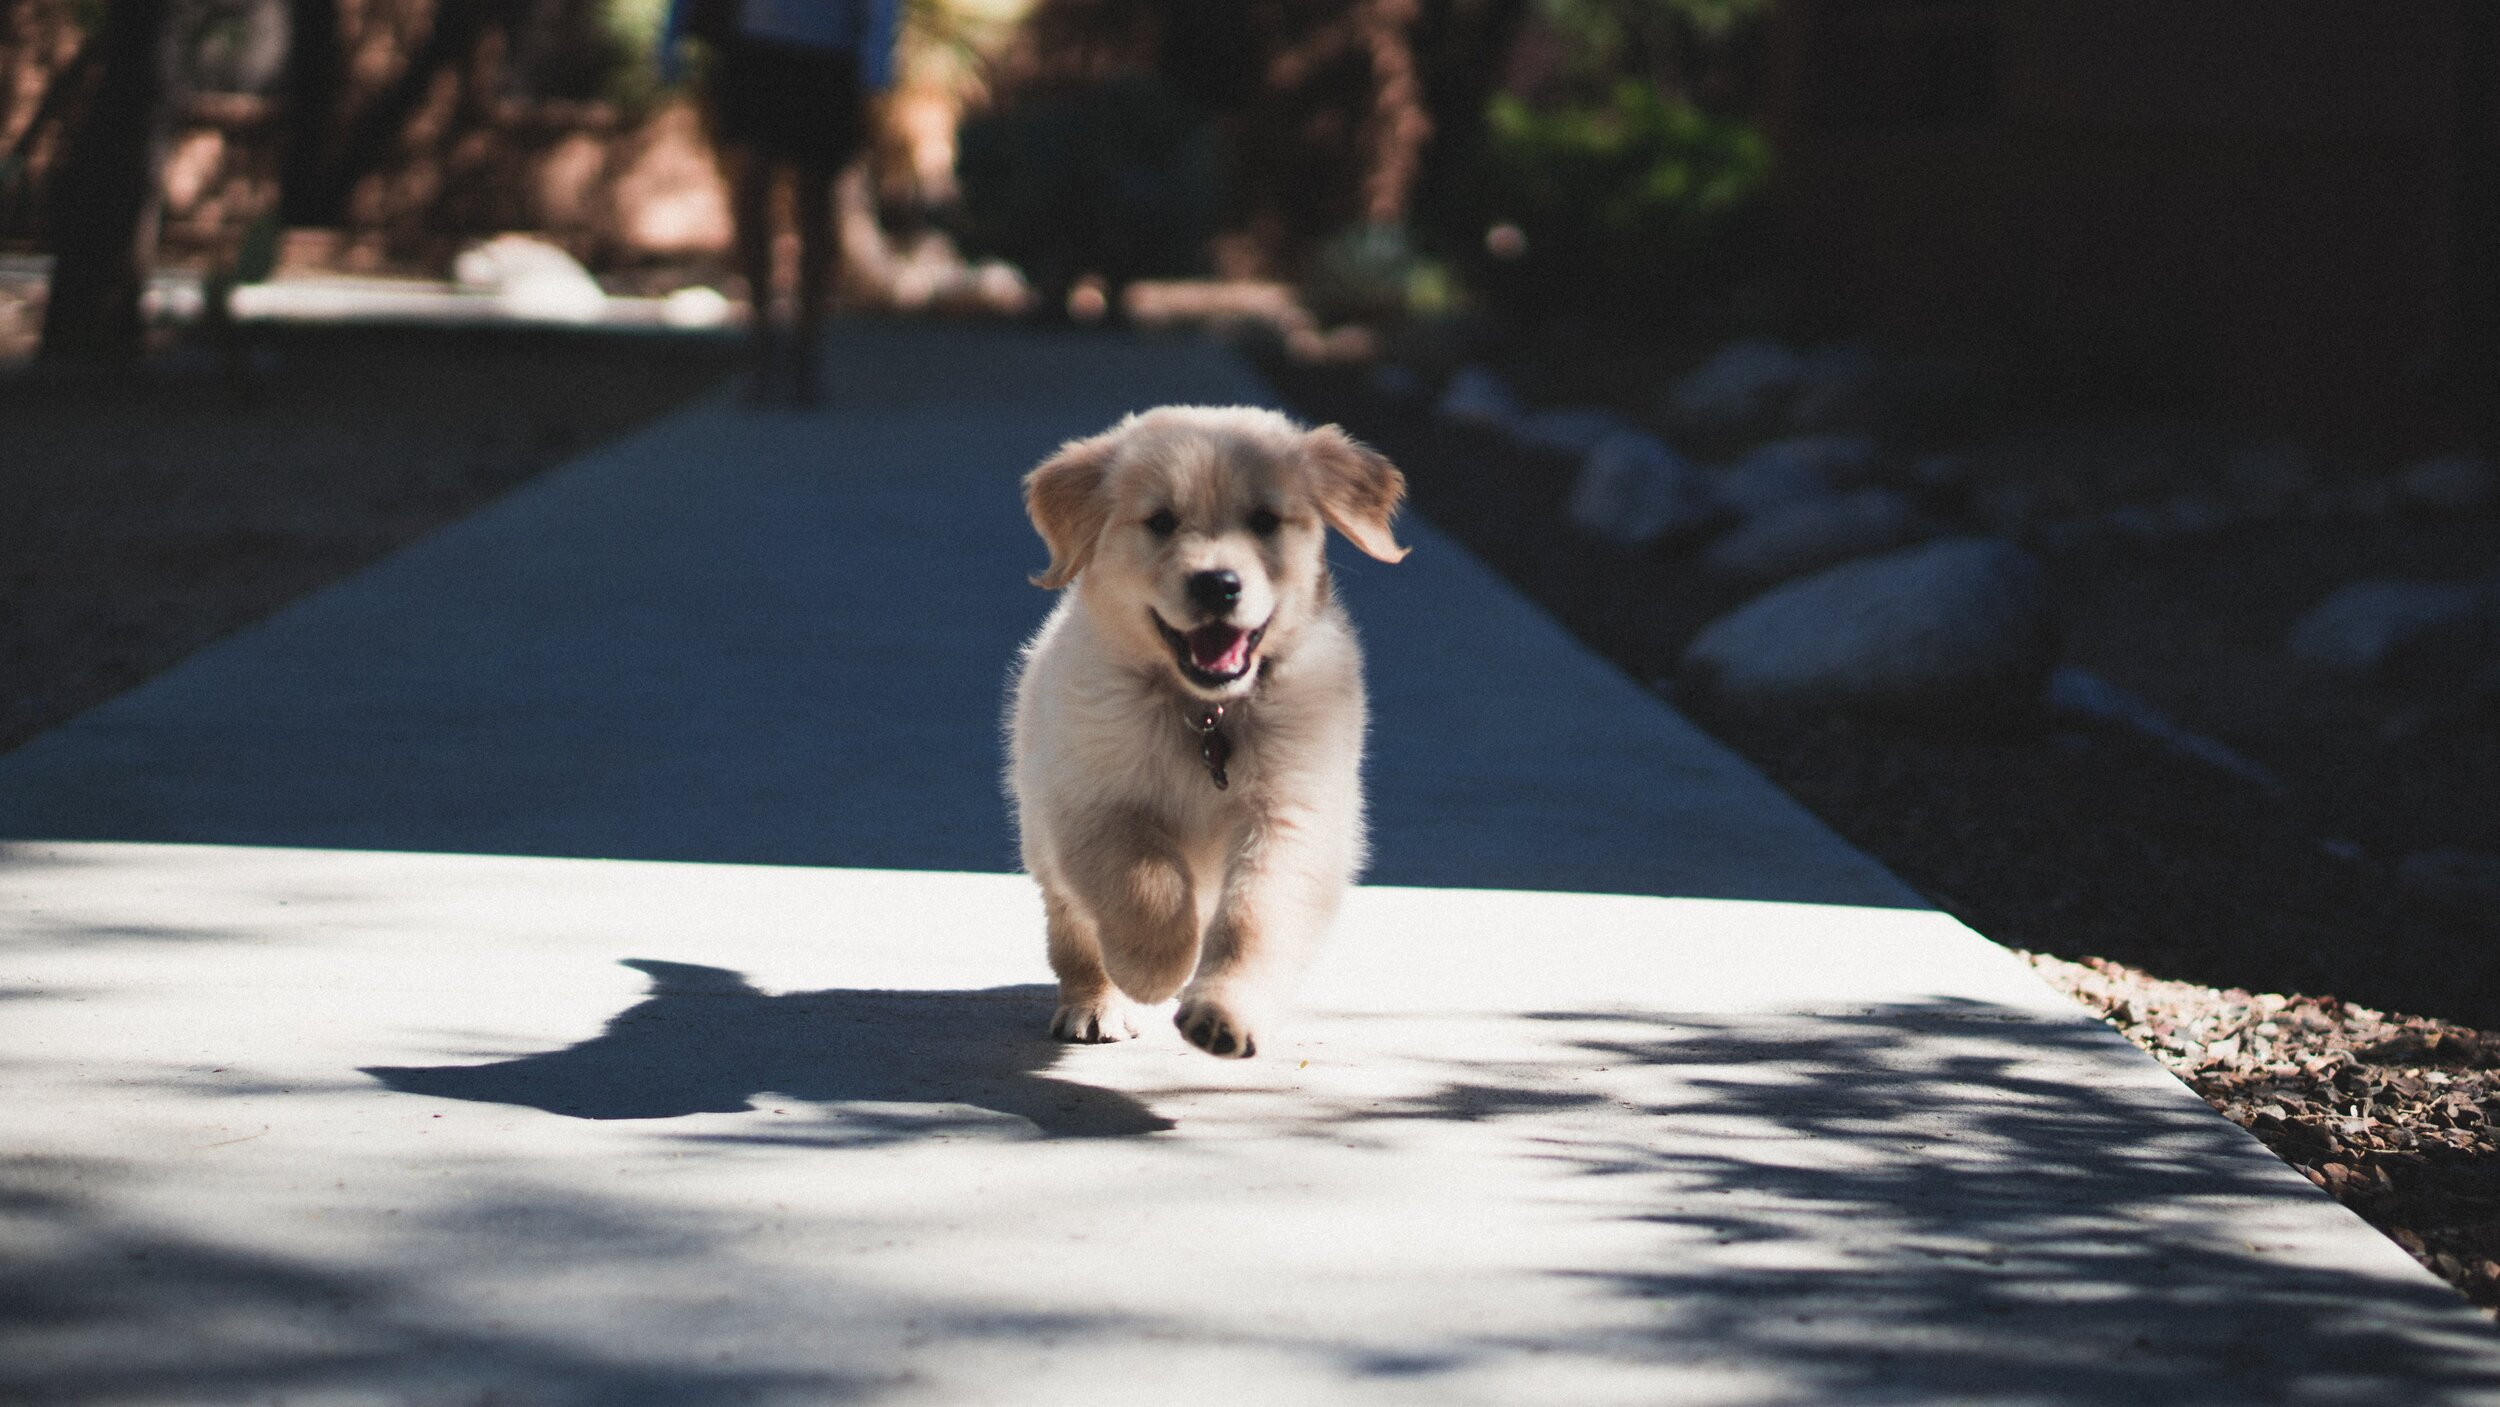 How to Socialize Your Puppy During Social Distancing! — The Puppy Academy